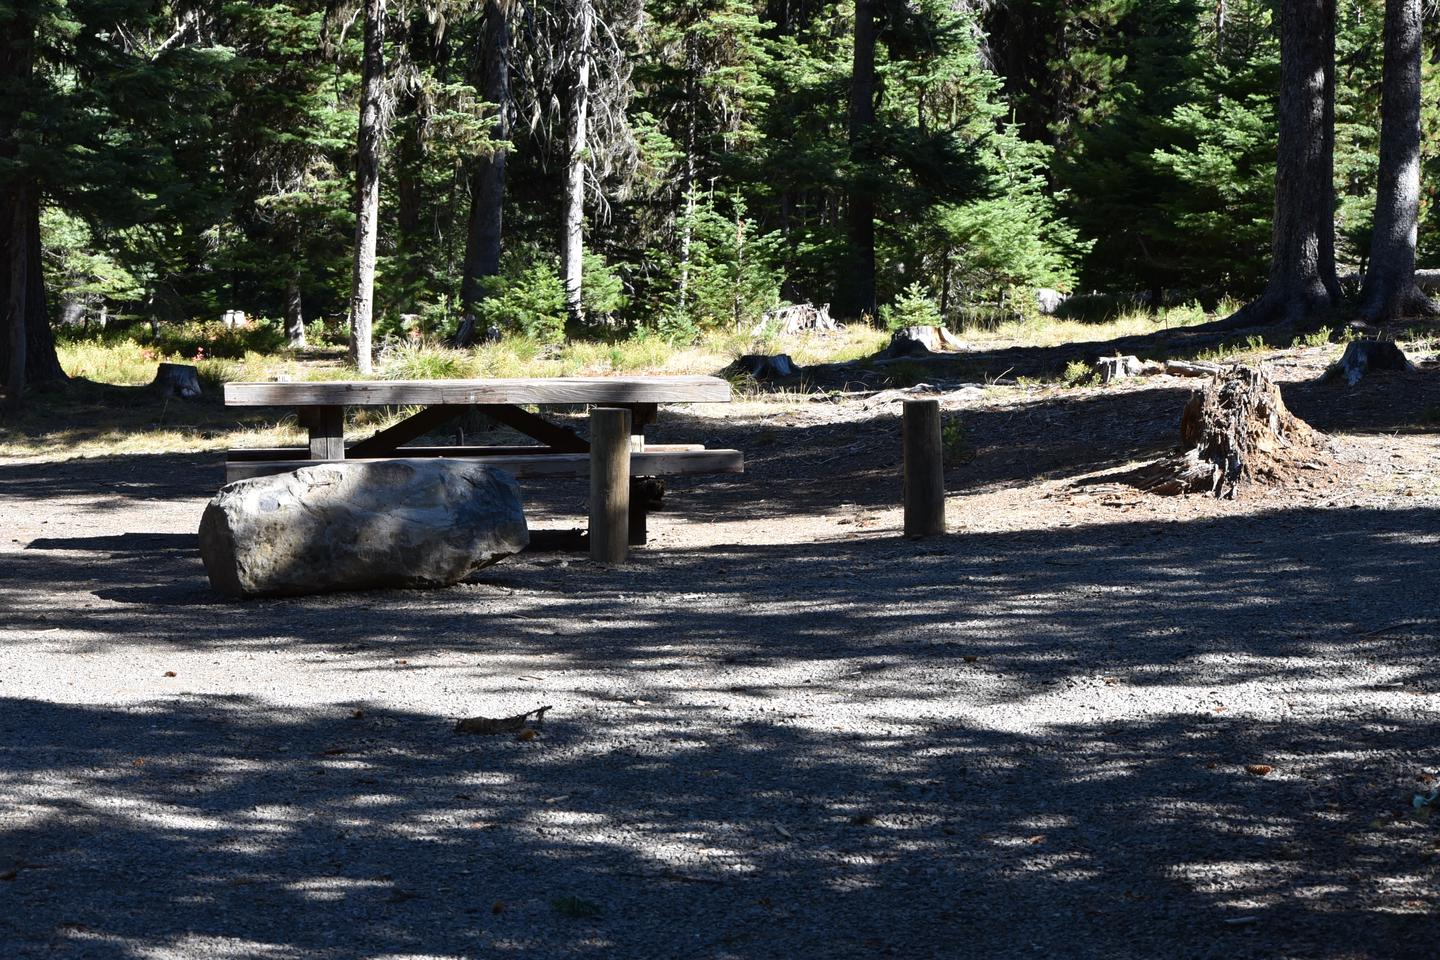 camp site parking area and picnic tableJubilee Lake Campground site #23